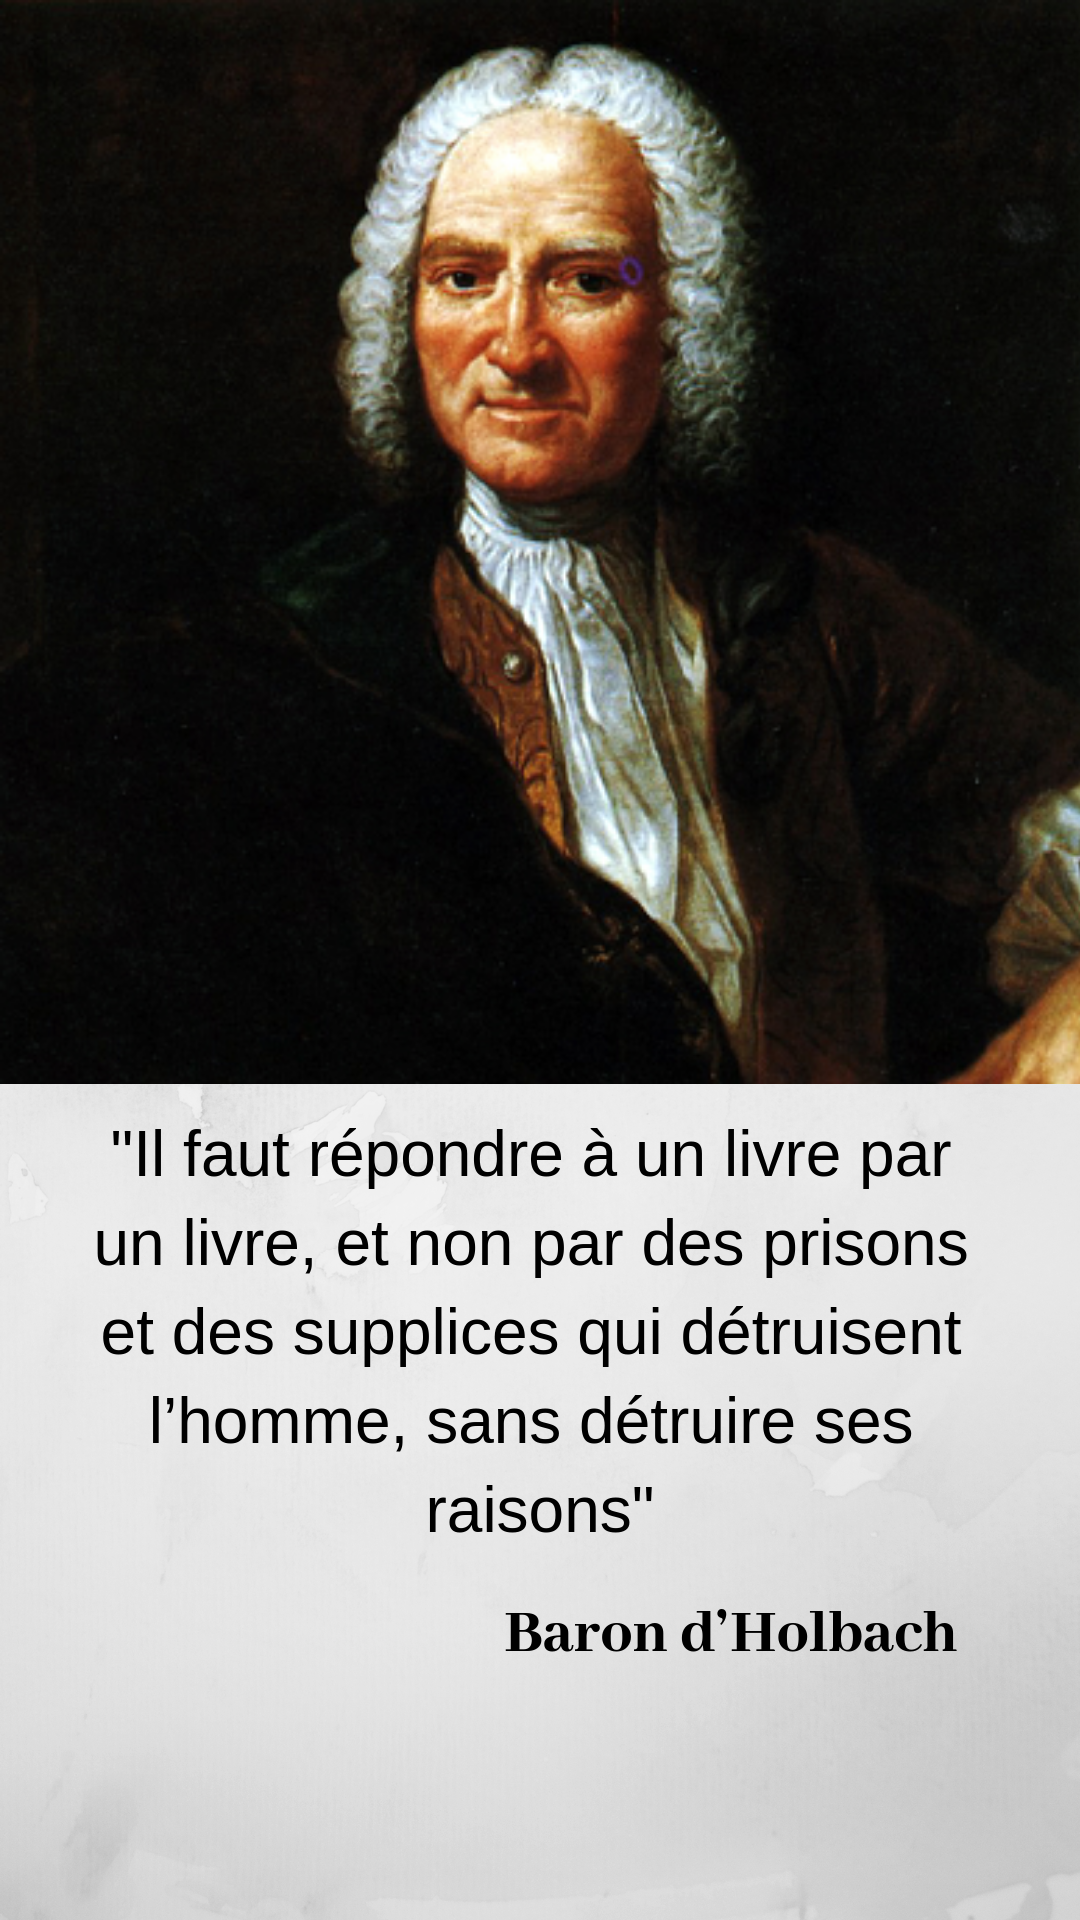 Pour Echapper A La Censure Les Encyclopedistes Utilisent Une Ruse Habile Savez Vous Laquelle Paroles De Sagesse Persecution Citation